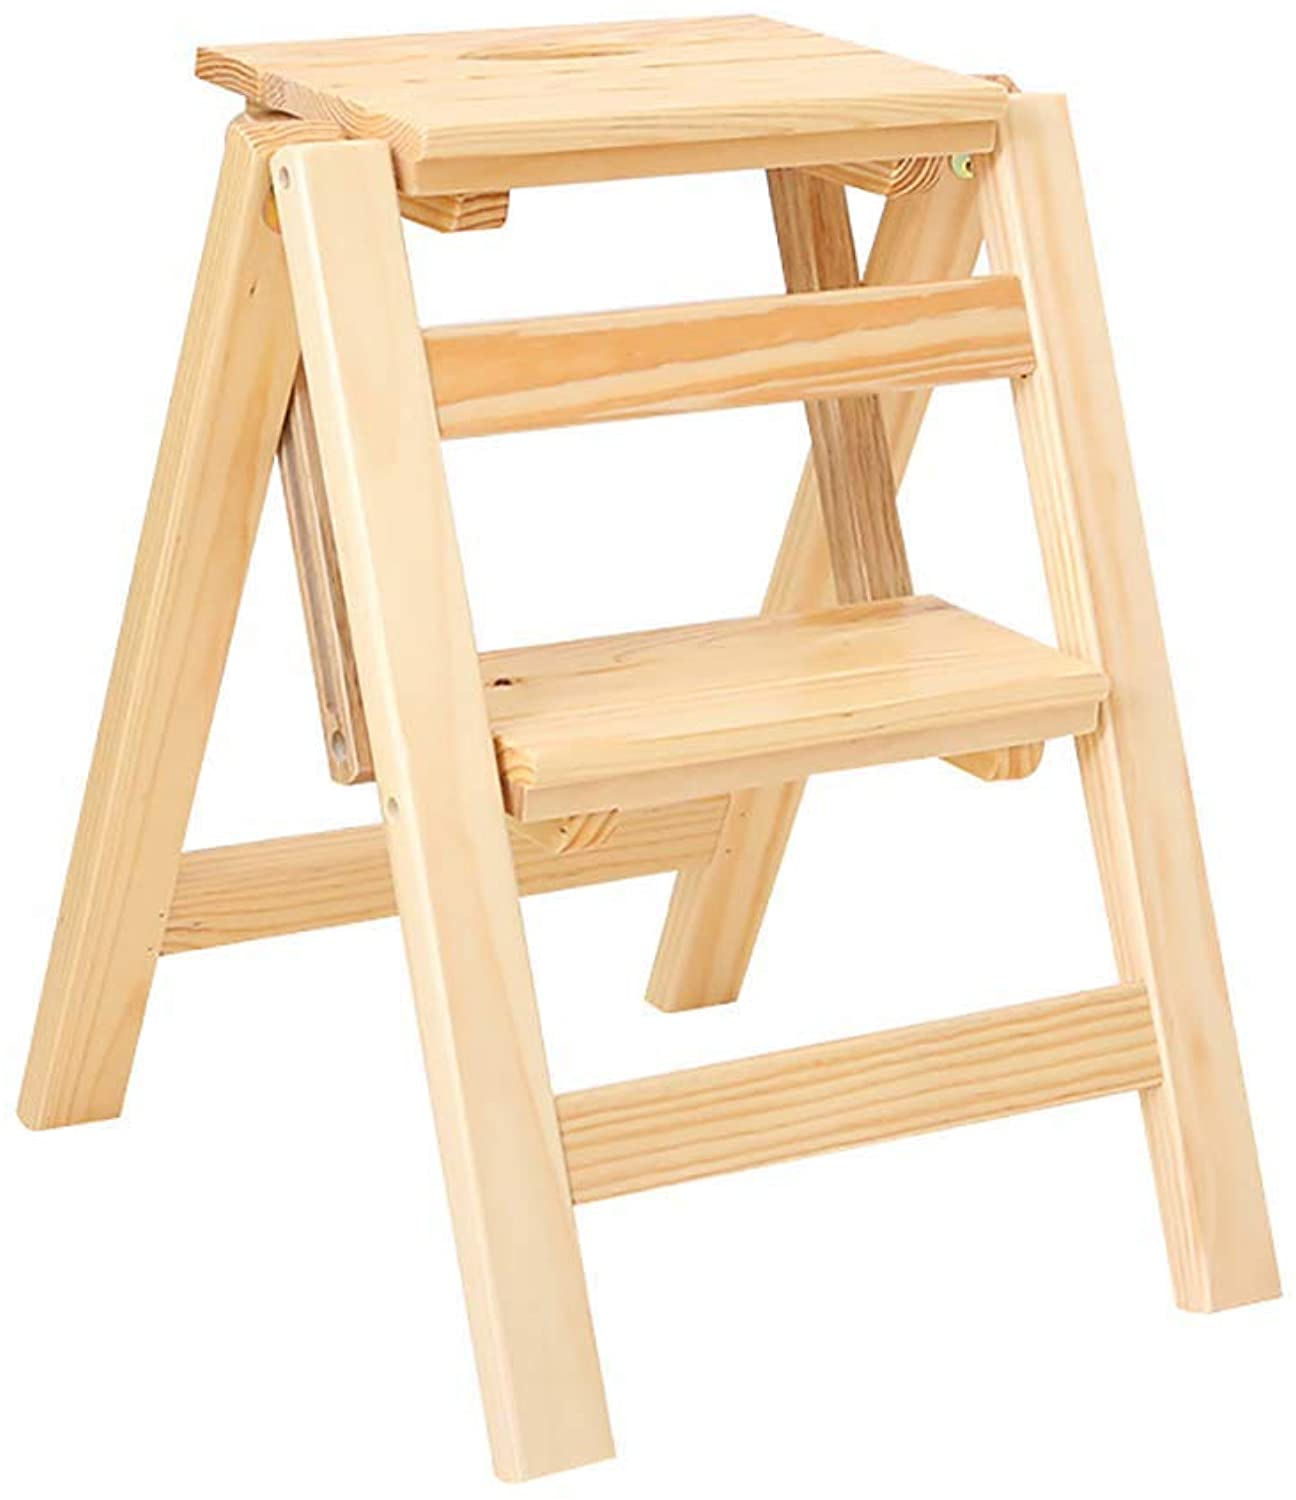 Solid Wood Step Stool Household Folding Ladder Two Steps Multifunction Bench Chair Dual Purpose Indoor (color   D)